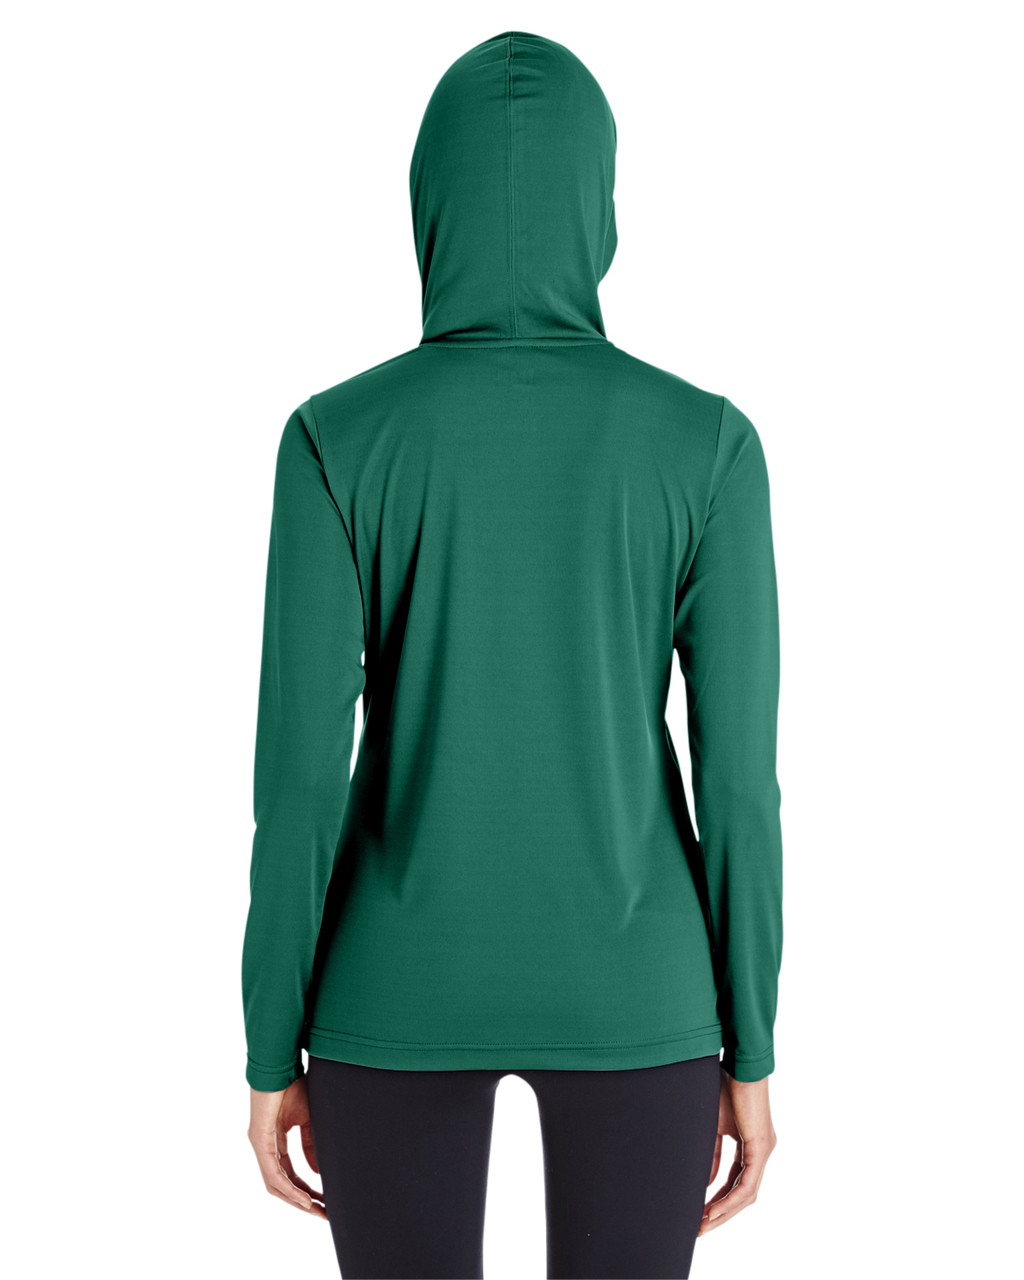 Sport Forest - TT41W Team 365 Ladies' Zone Performance Hoodie